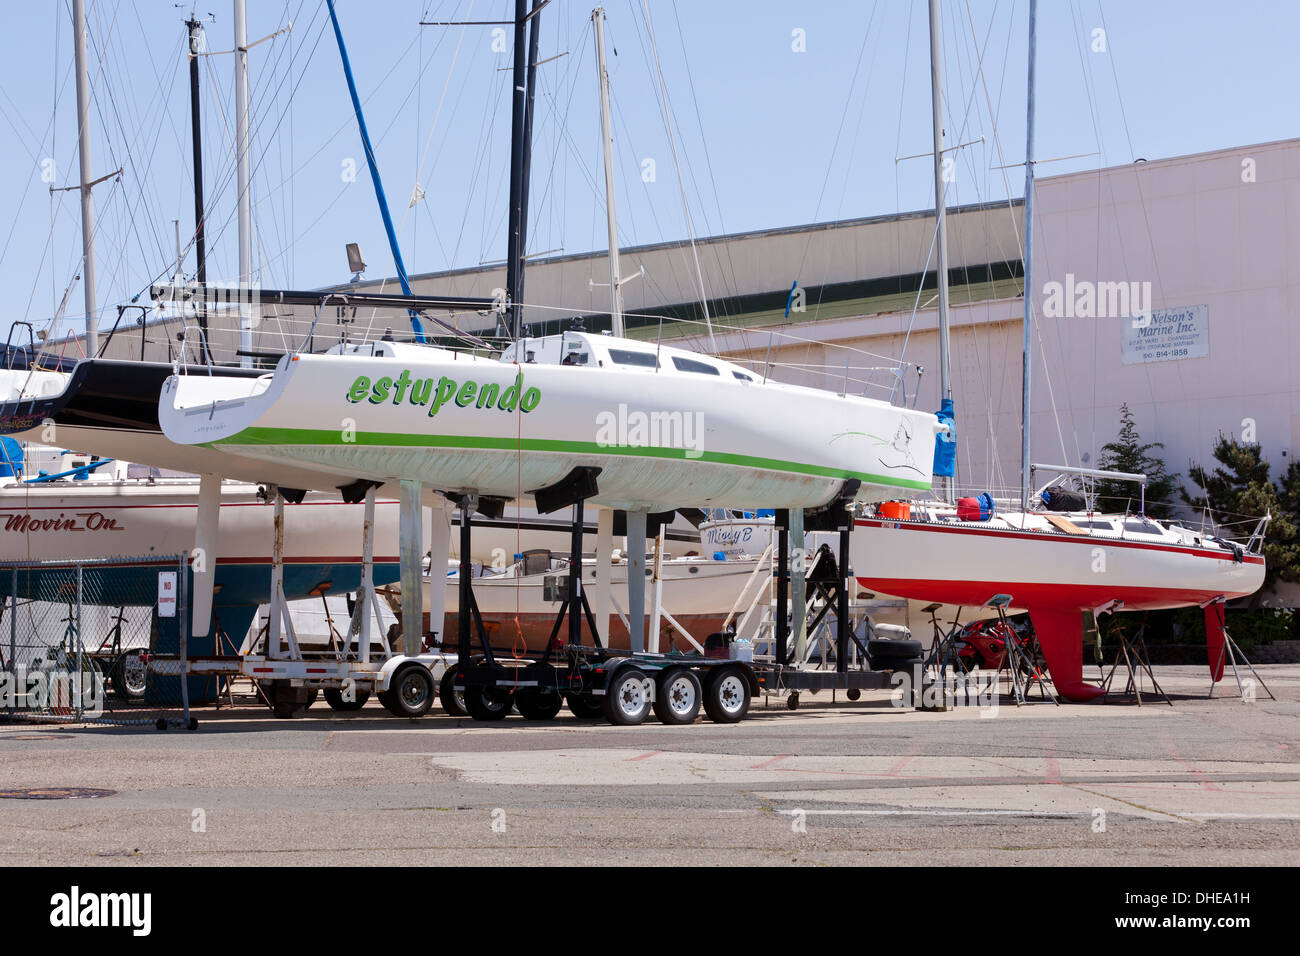 Sail boats on stands at boatyard - Alameda, California USA - Stock Image